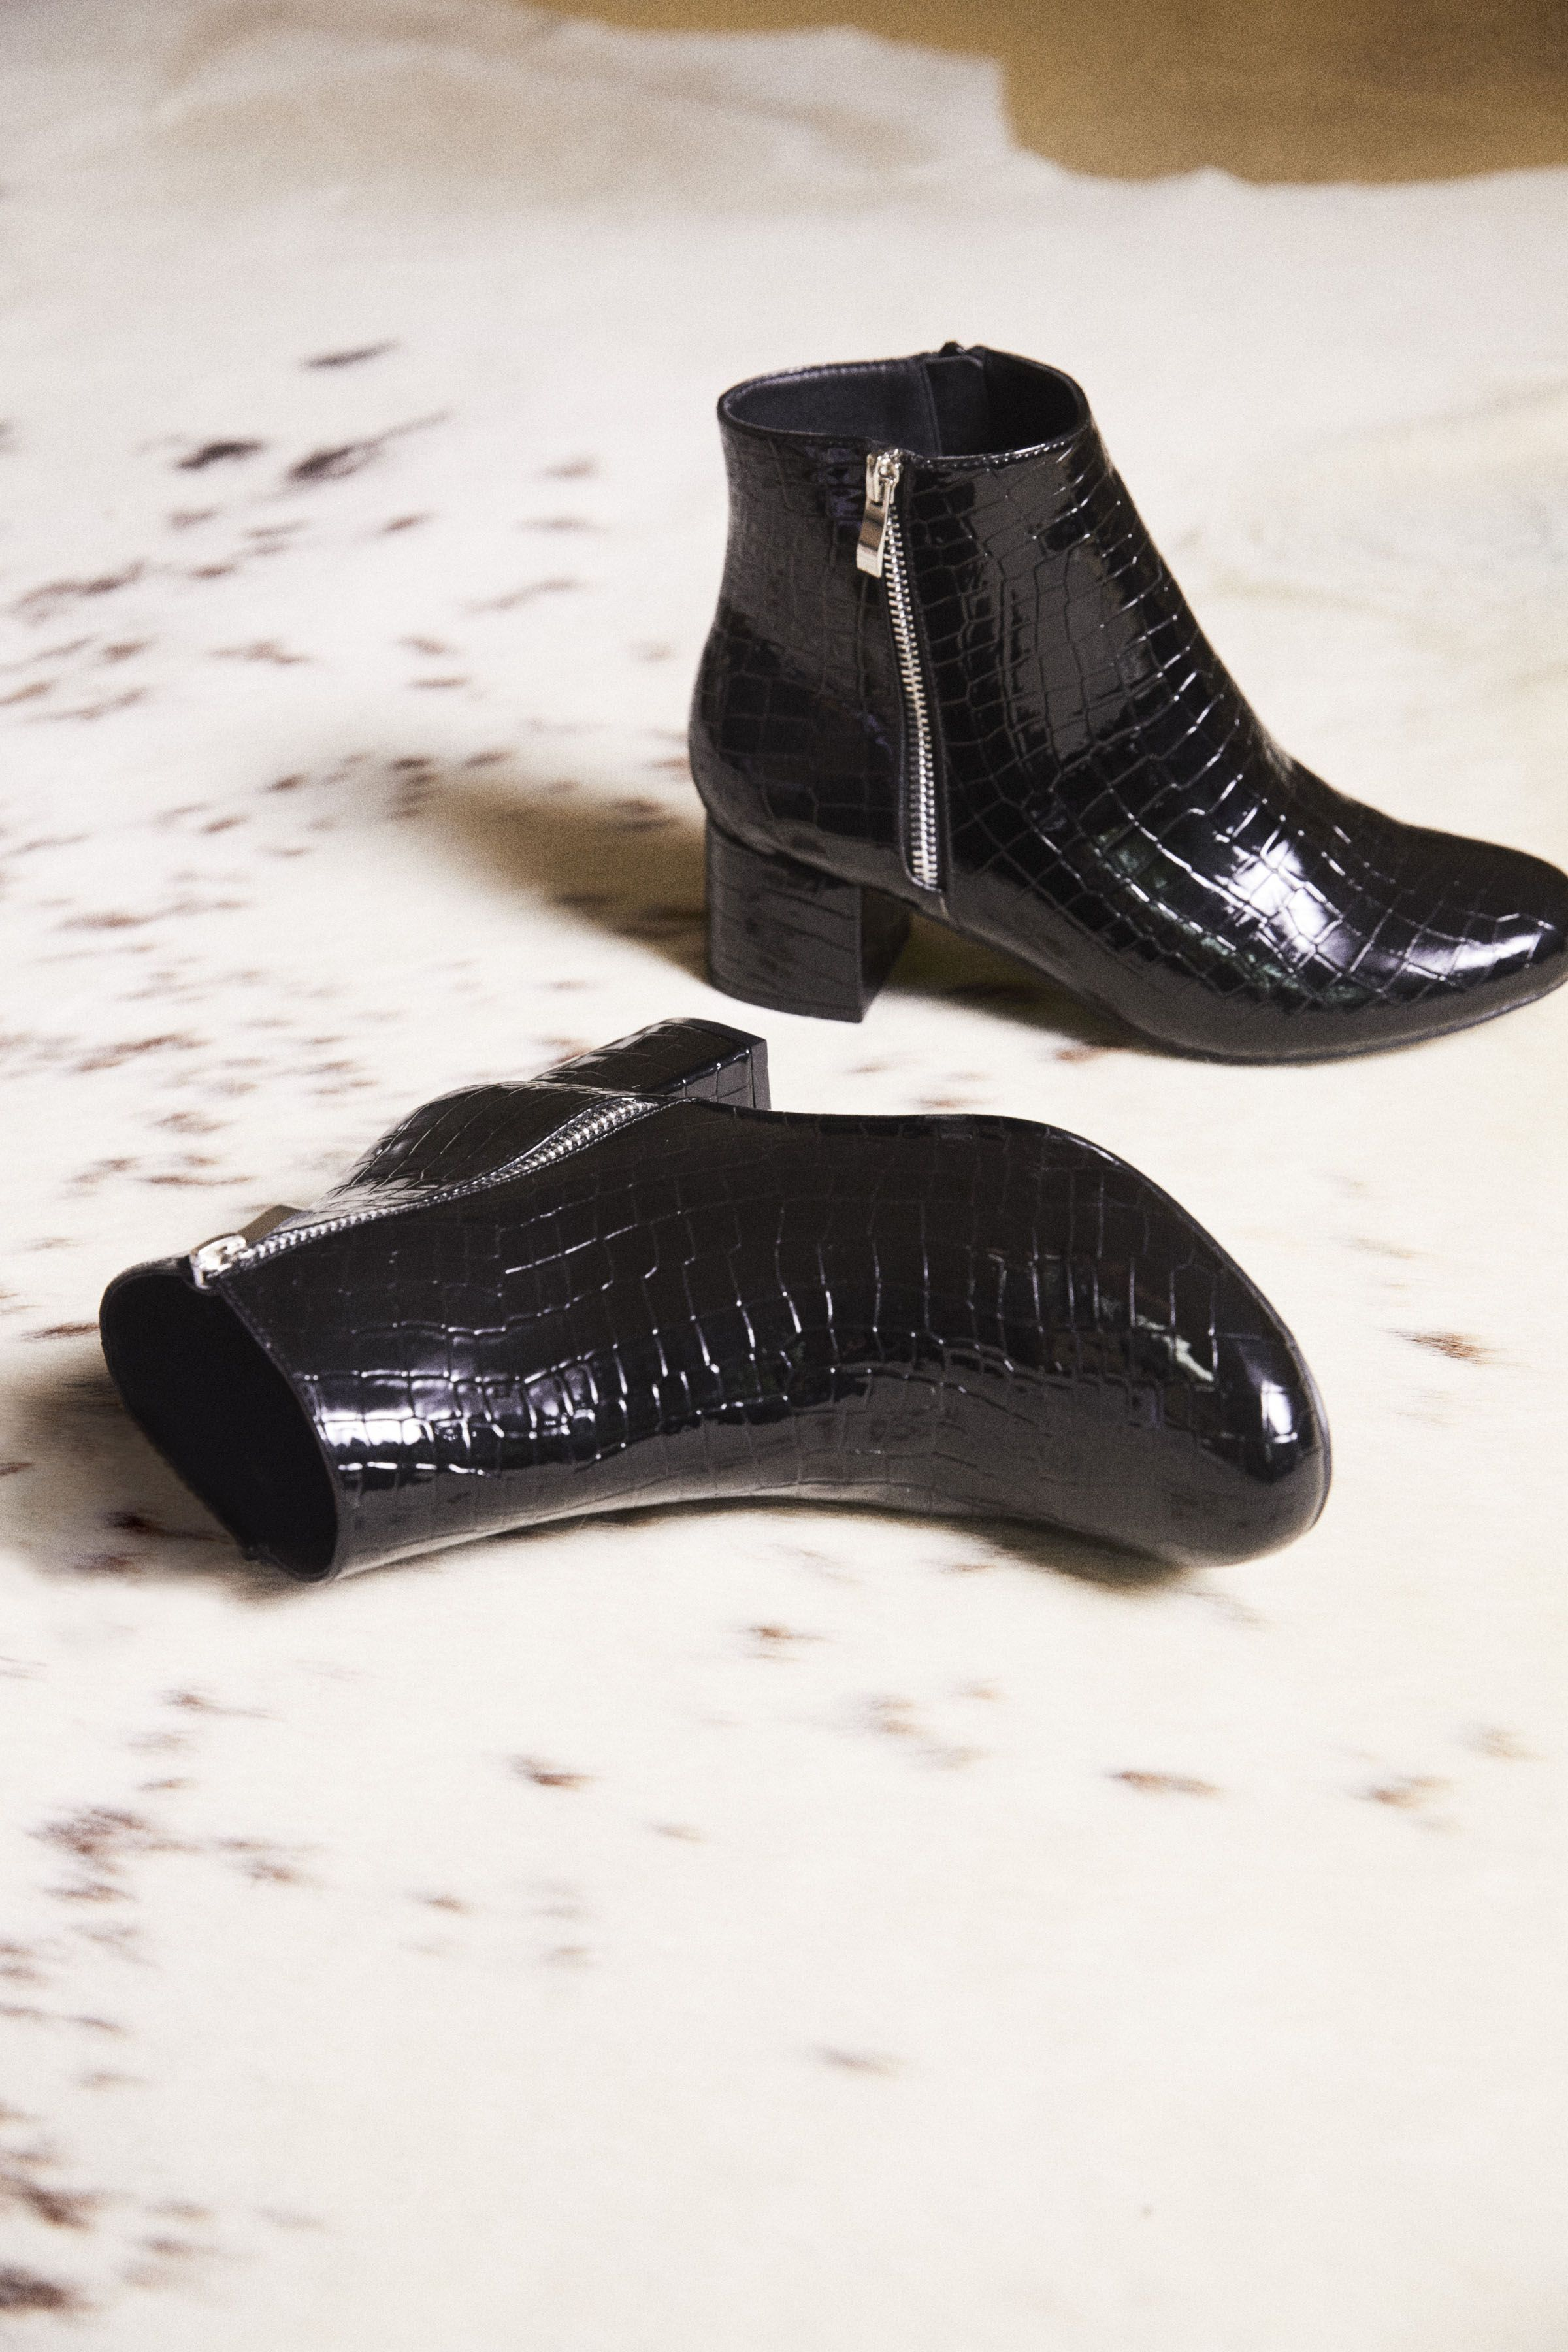 Chaussures Nouvelle Femme Collection Gemo Lookbook Bottines x48nXn